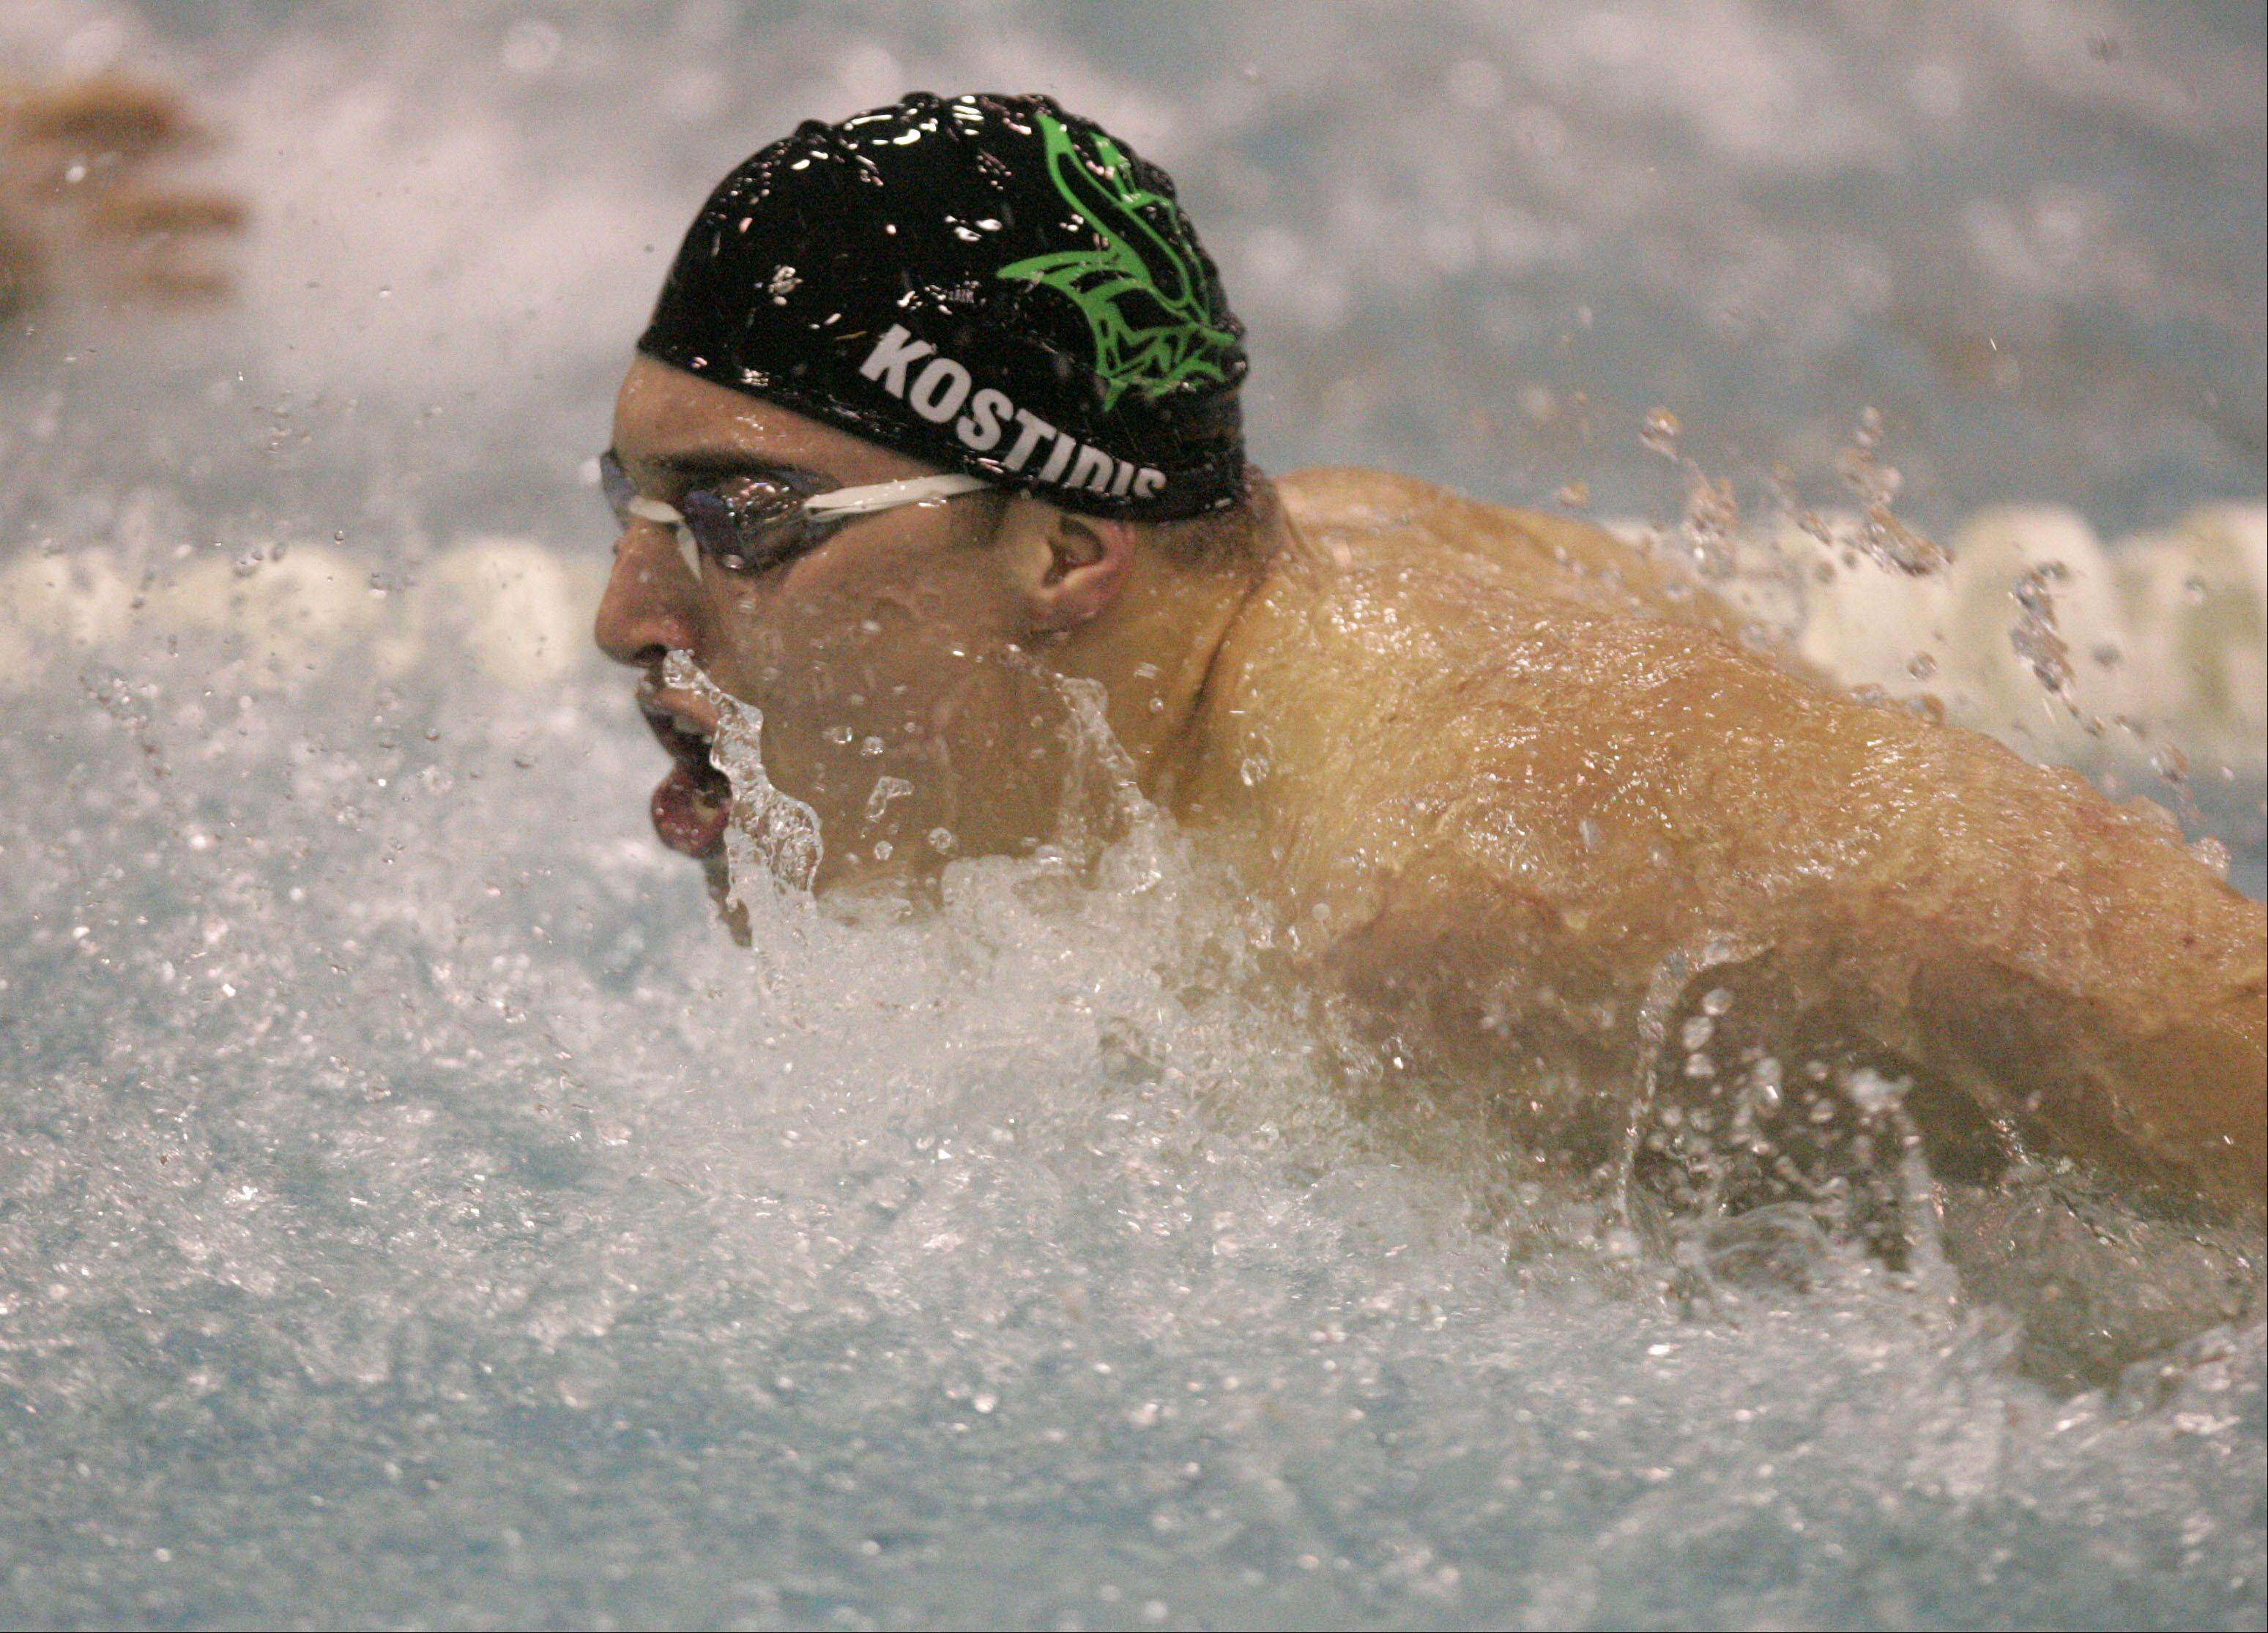 Dennis Kostidis of Fremd competes in the 100-yard butterfly during the boys swimming state meet prelimiinaries at New Trier High School on Friday.